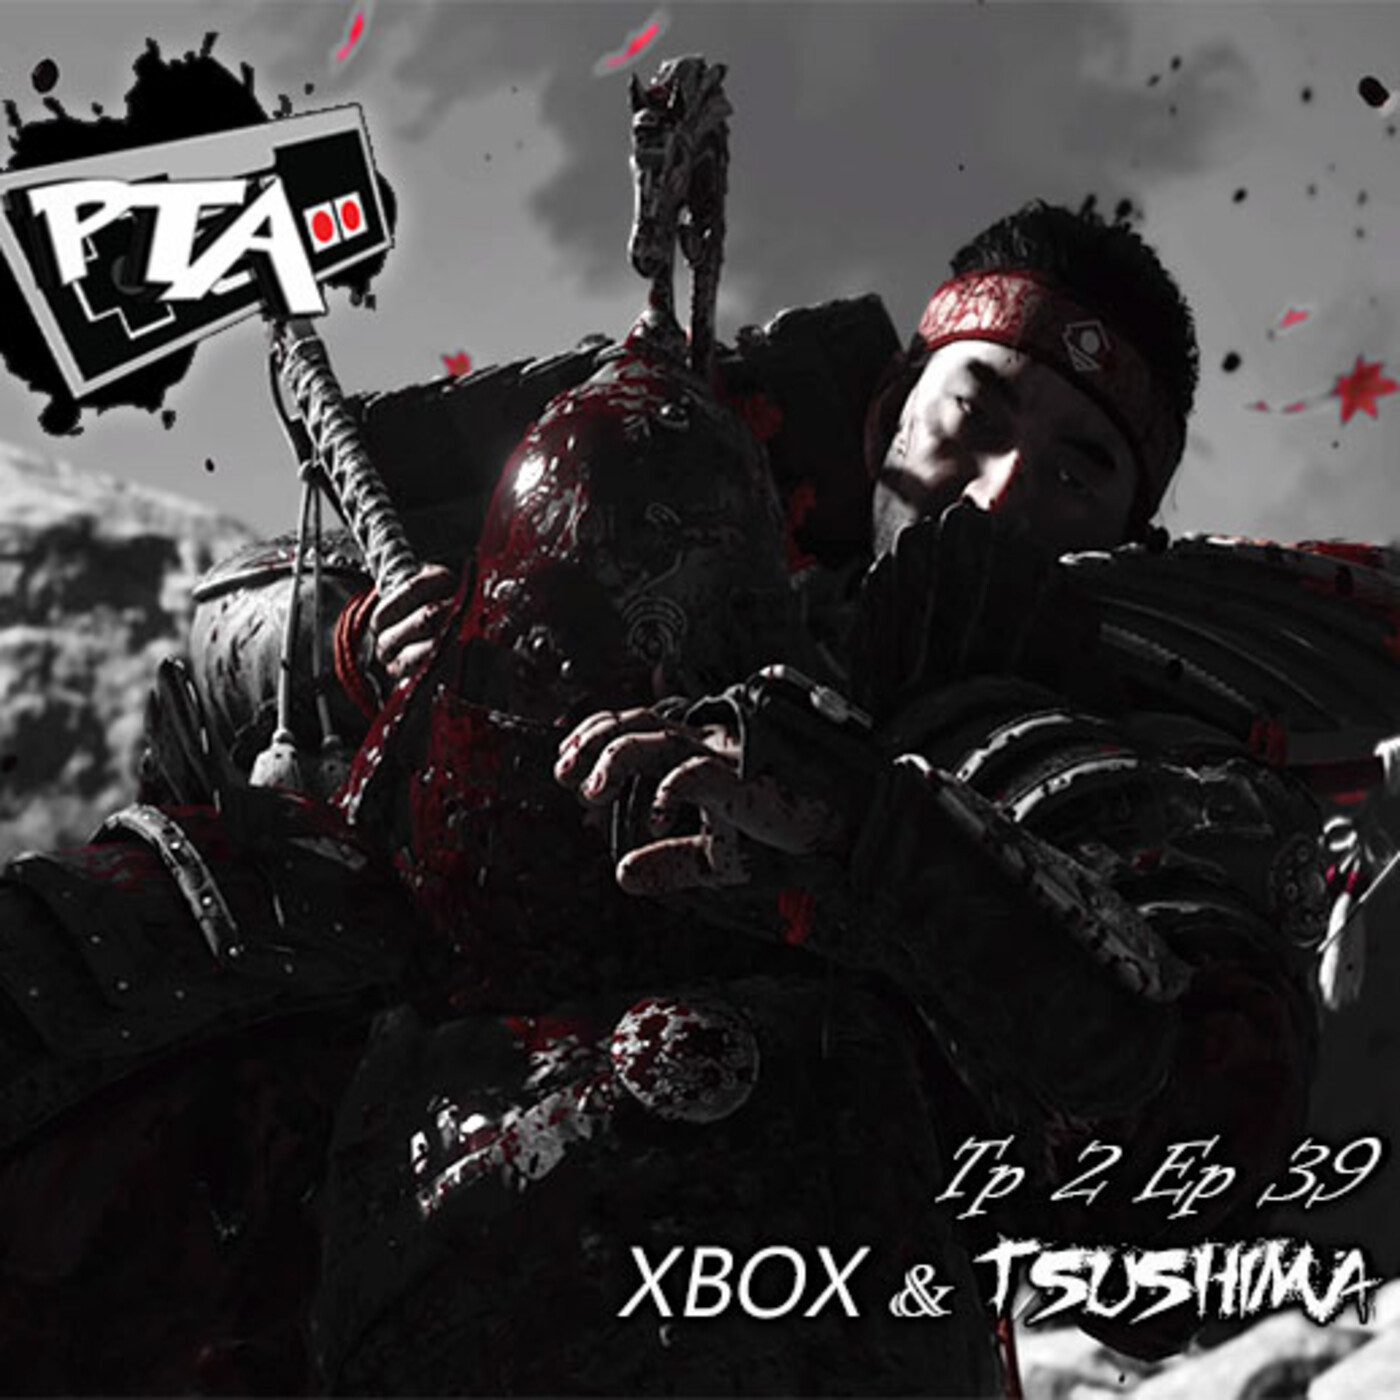 Play Them All T2 Ep 39: Xbox & Tsushima